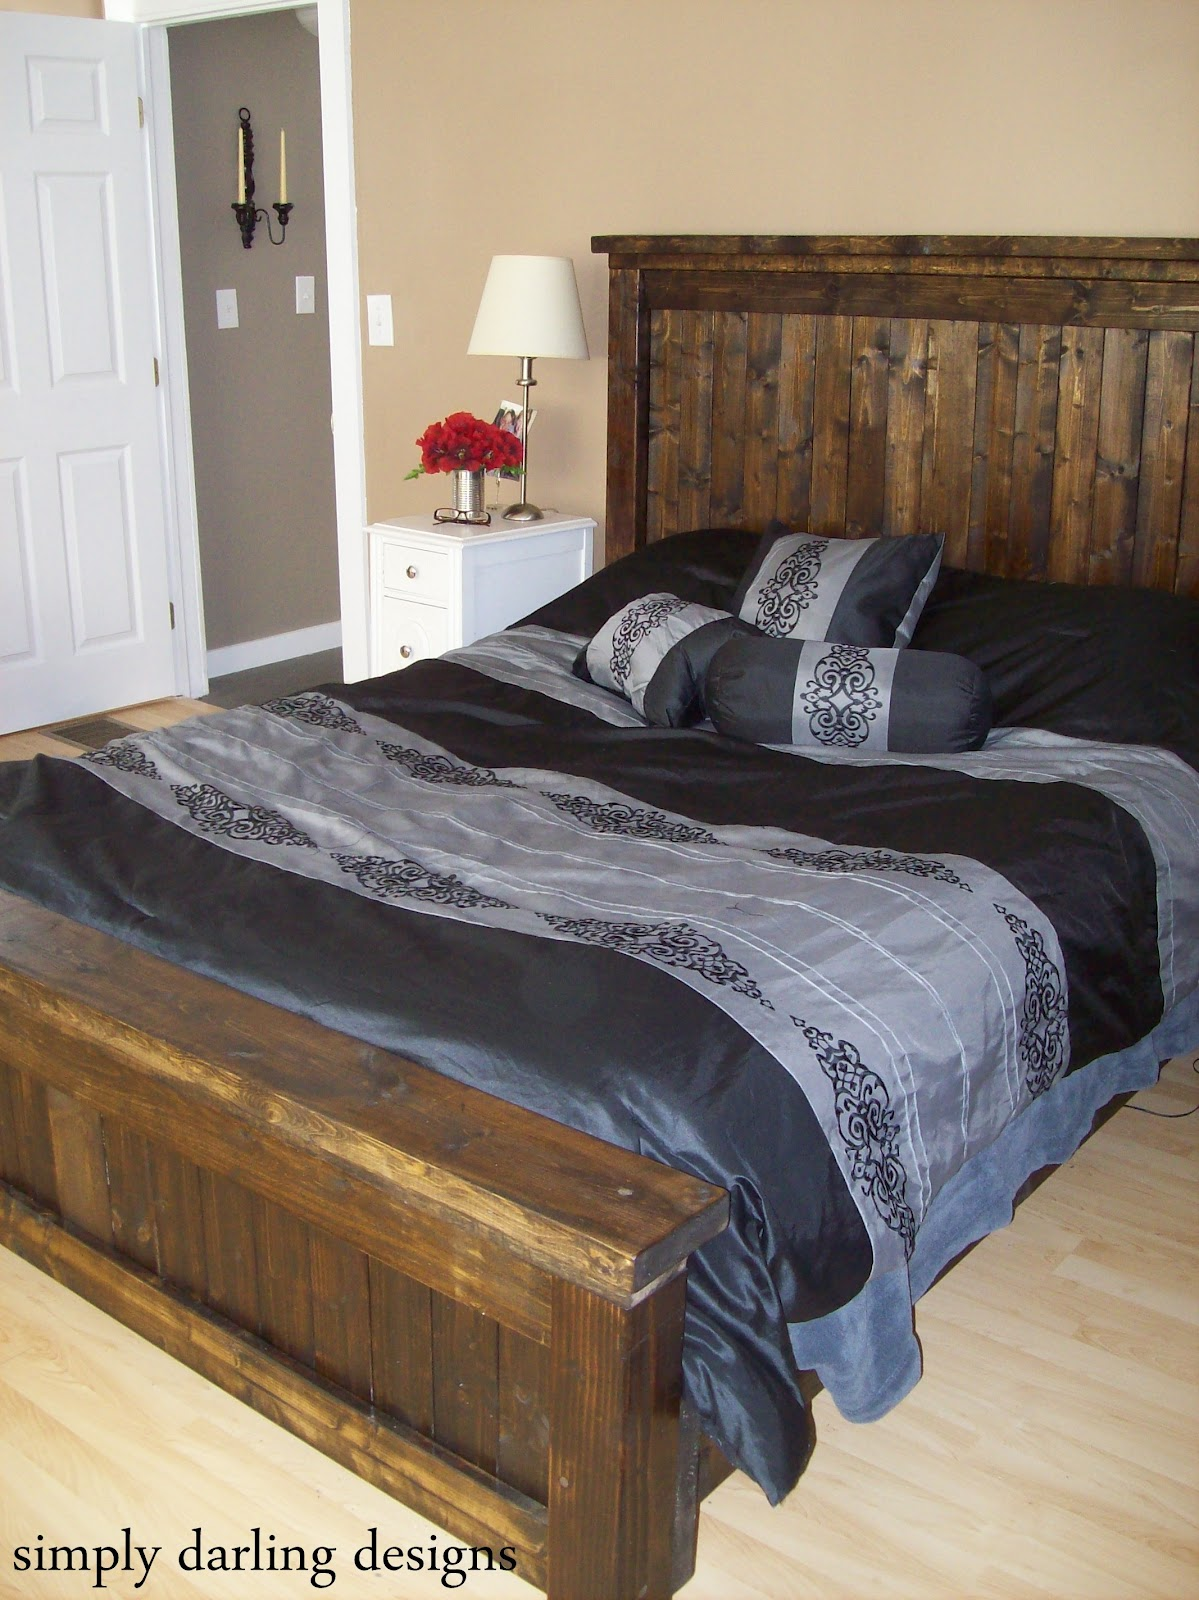 simply darling designs The Farmhouse Bed